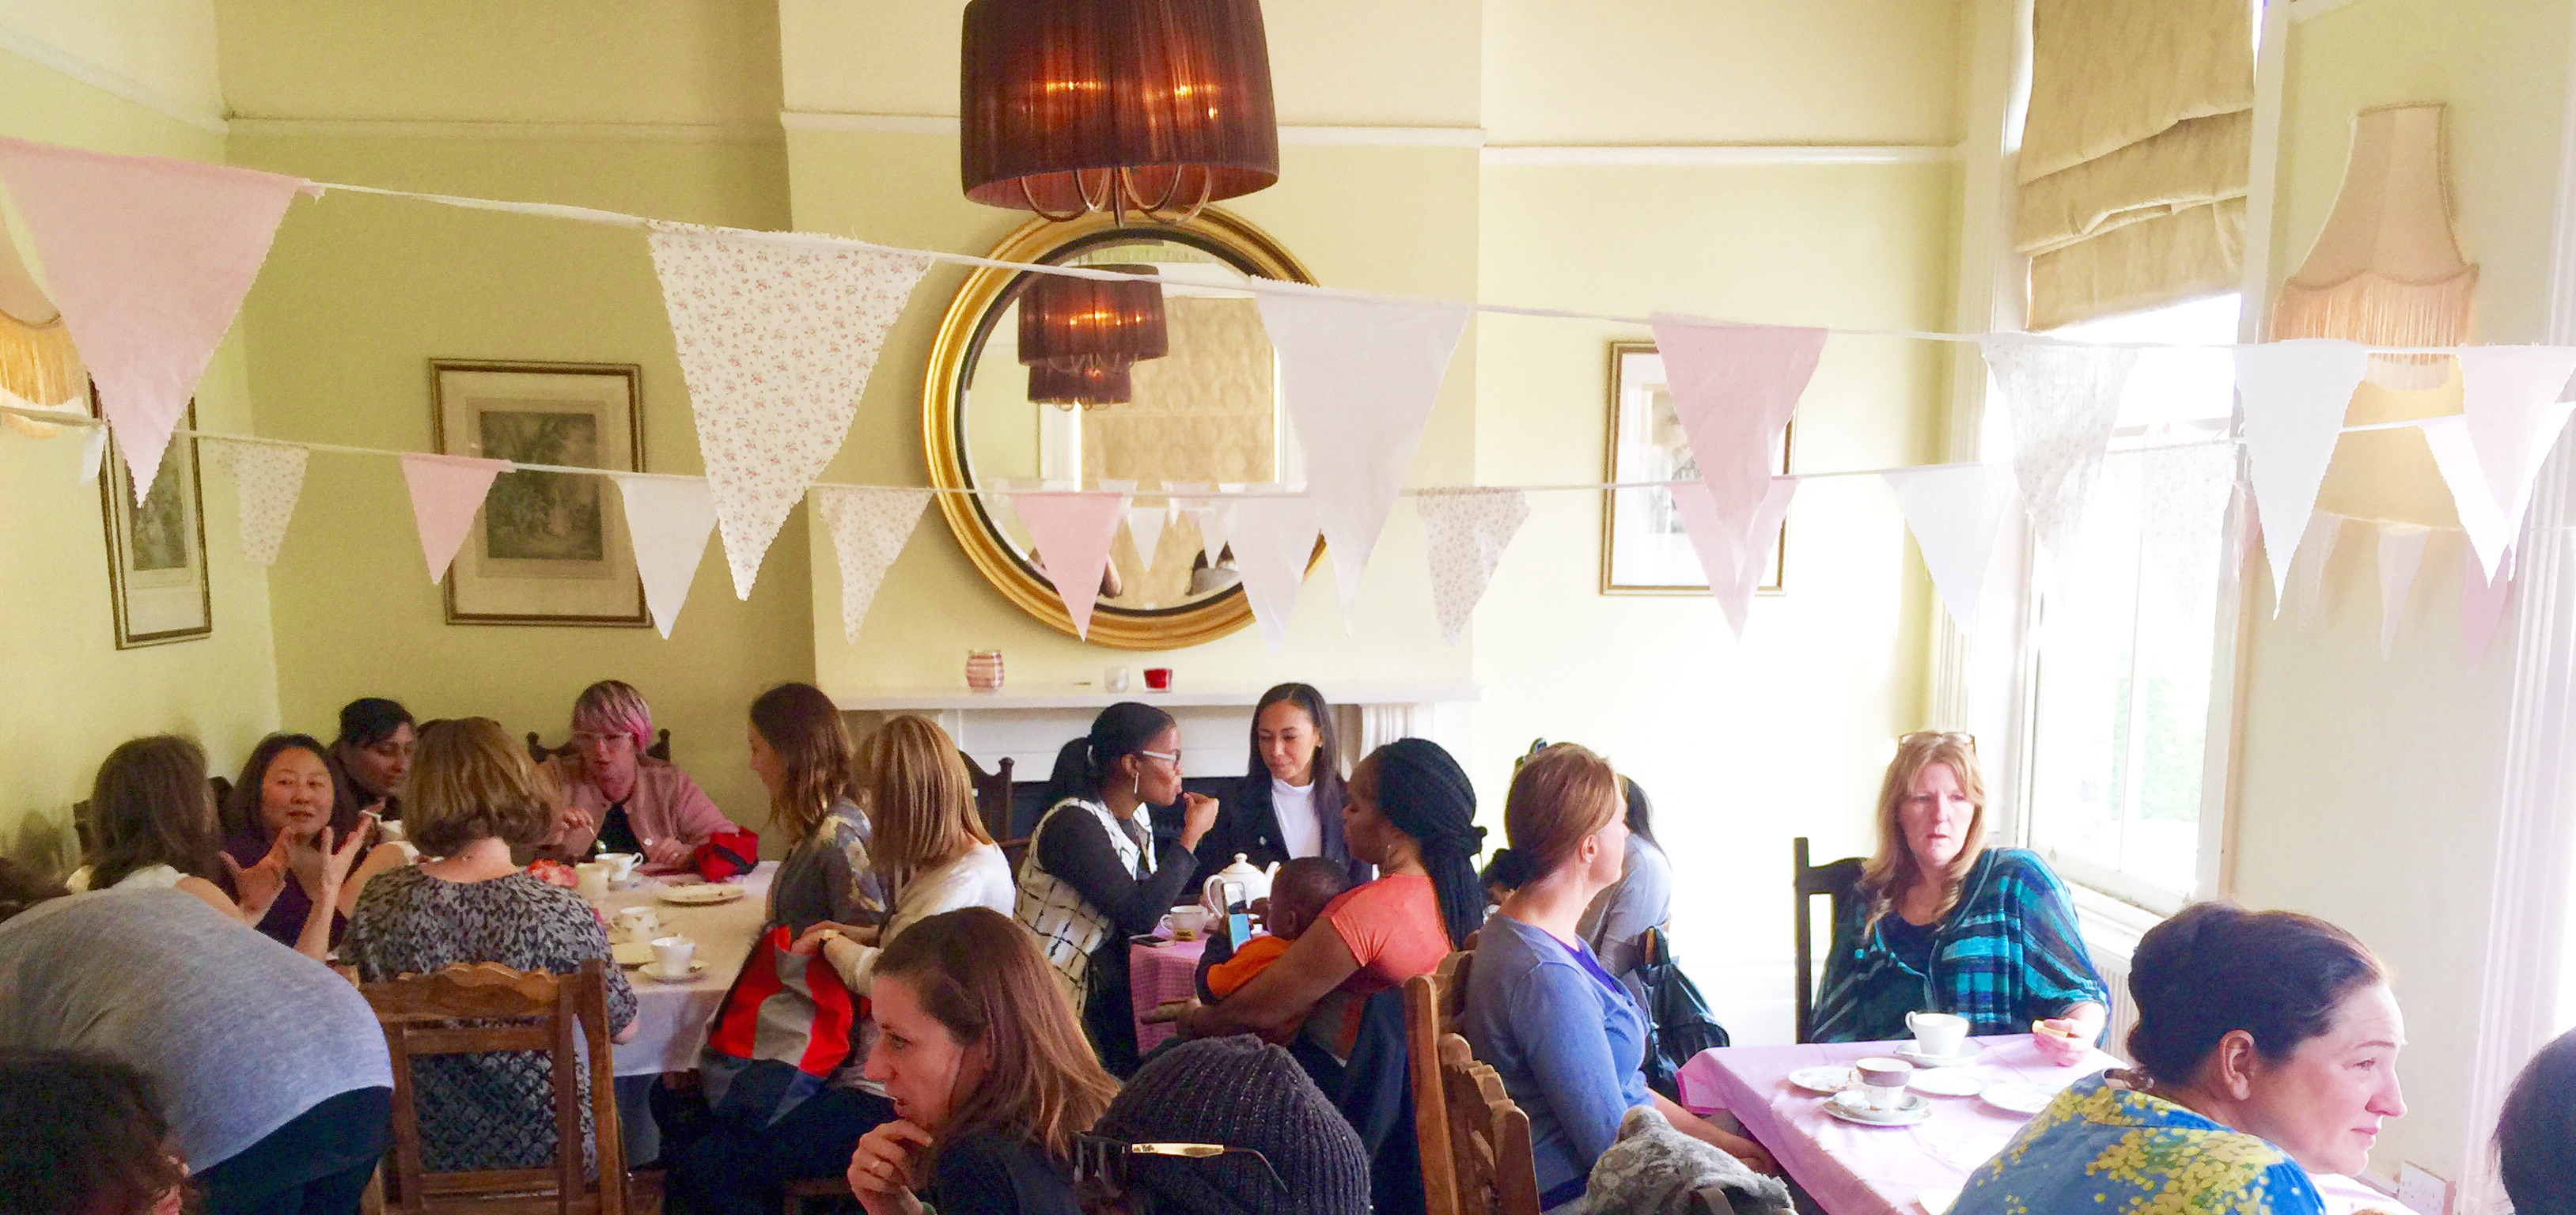 macmillan coffee morning with Glam Hatters